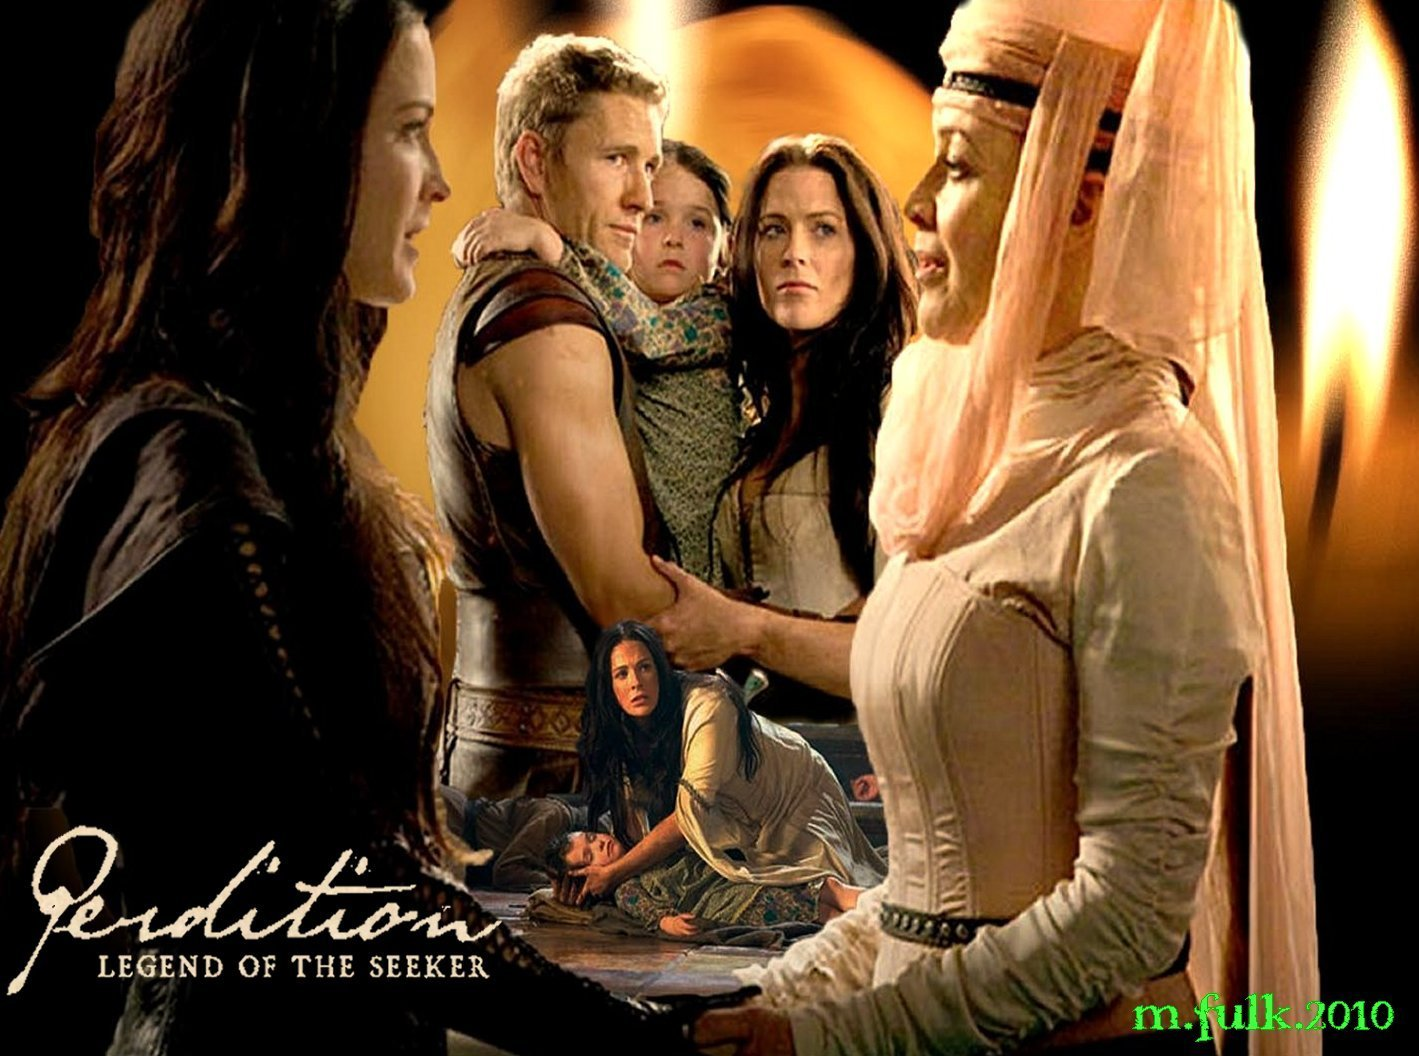 the legend of the seeker porn pics